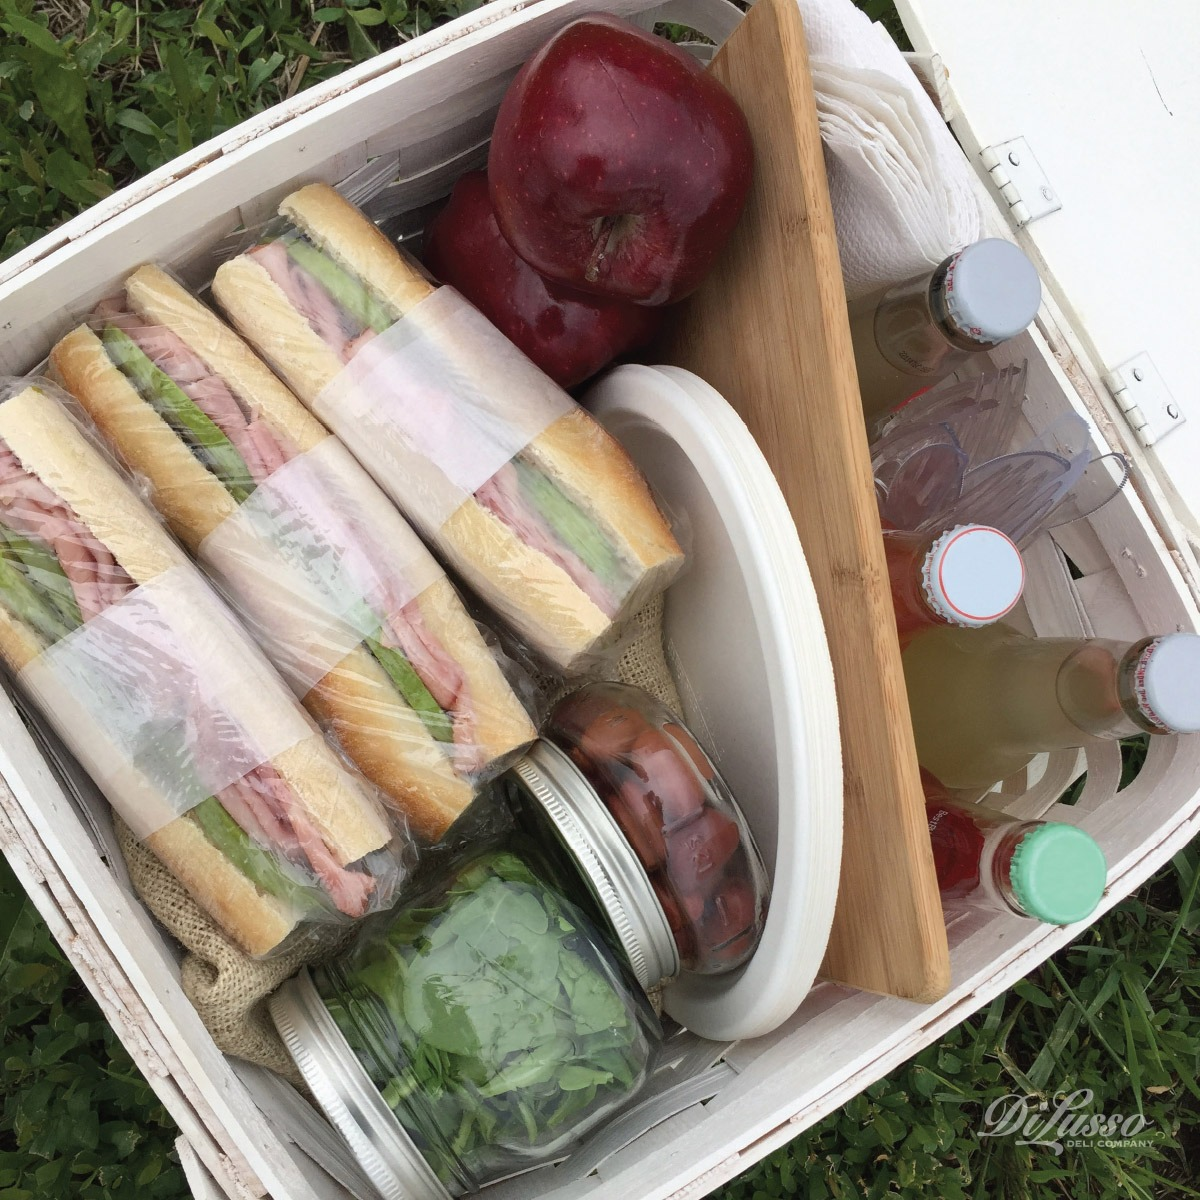 home design products anderson indiana on portable deli ideas pack the perfect picnic on portable deli ideas - Home Design Products Anderson In